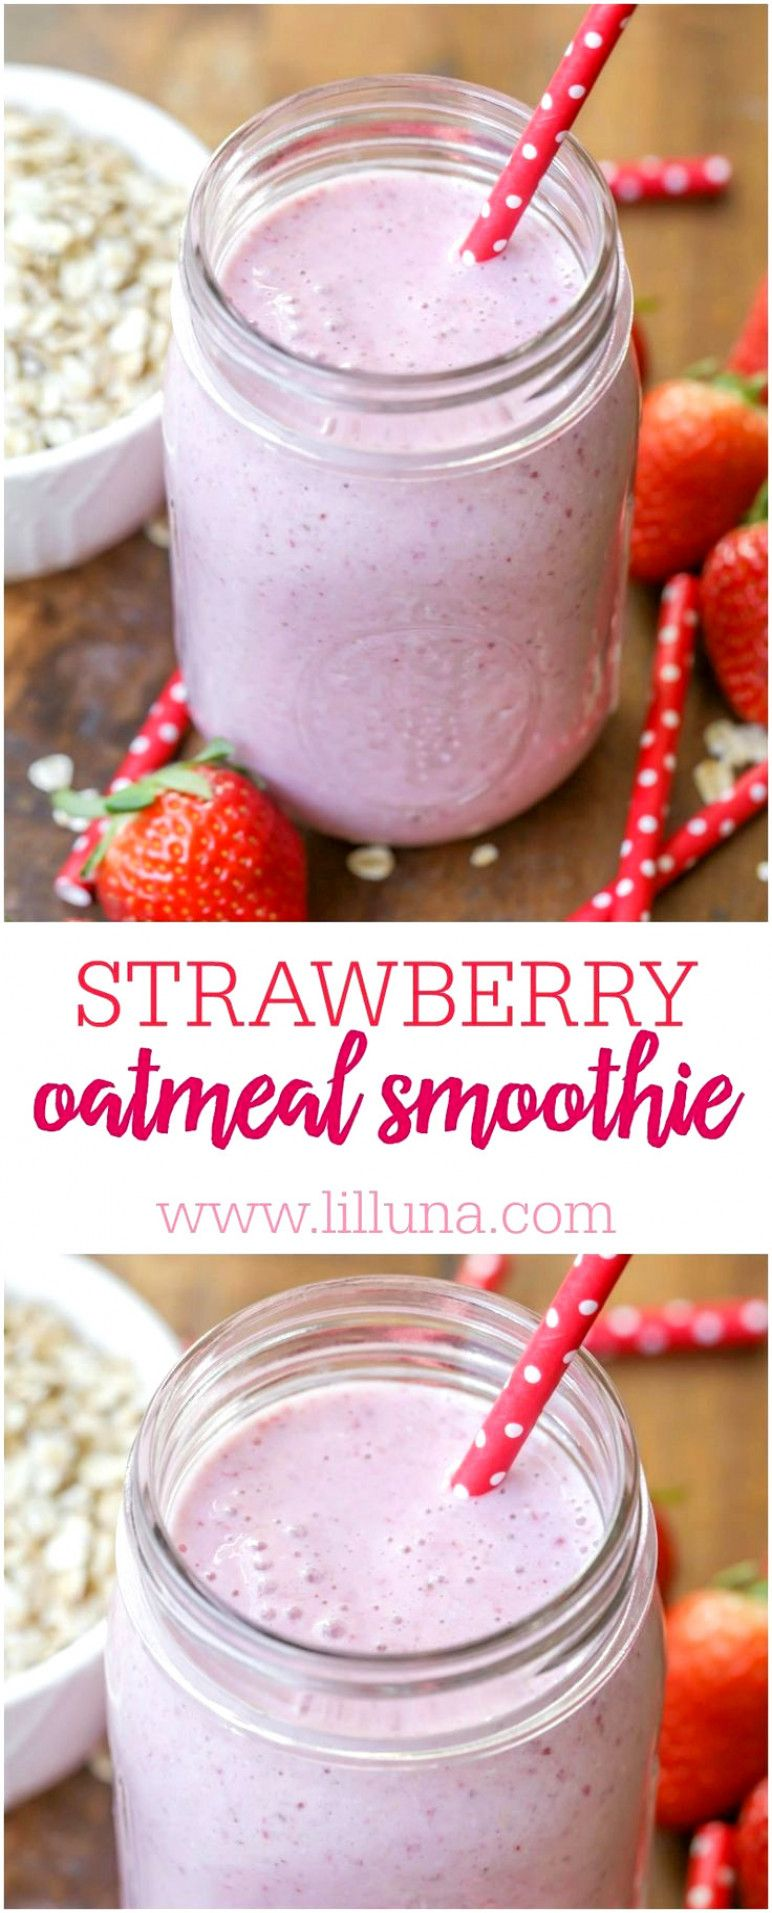 Strawberry Oatmeal Smoothie #fruitsmoothie